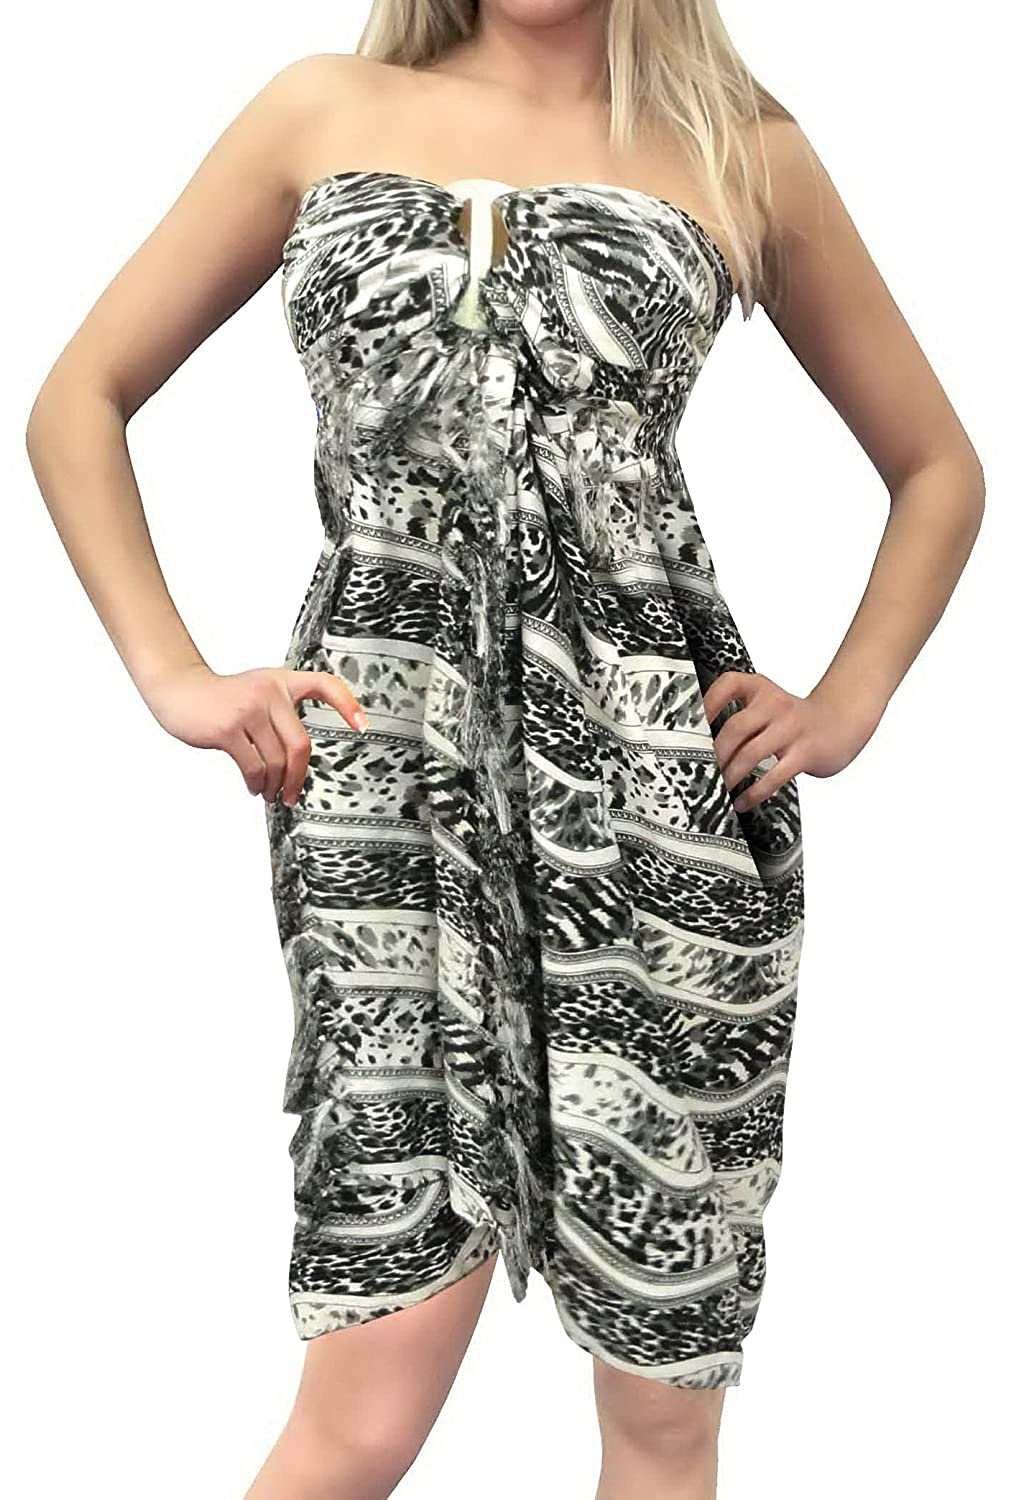 e9373224a8 LA LEELA Soft Light Resort Scarf Deal Dress Sarong Printed 72